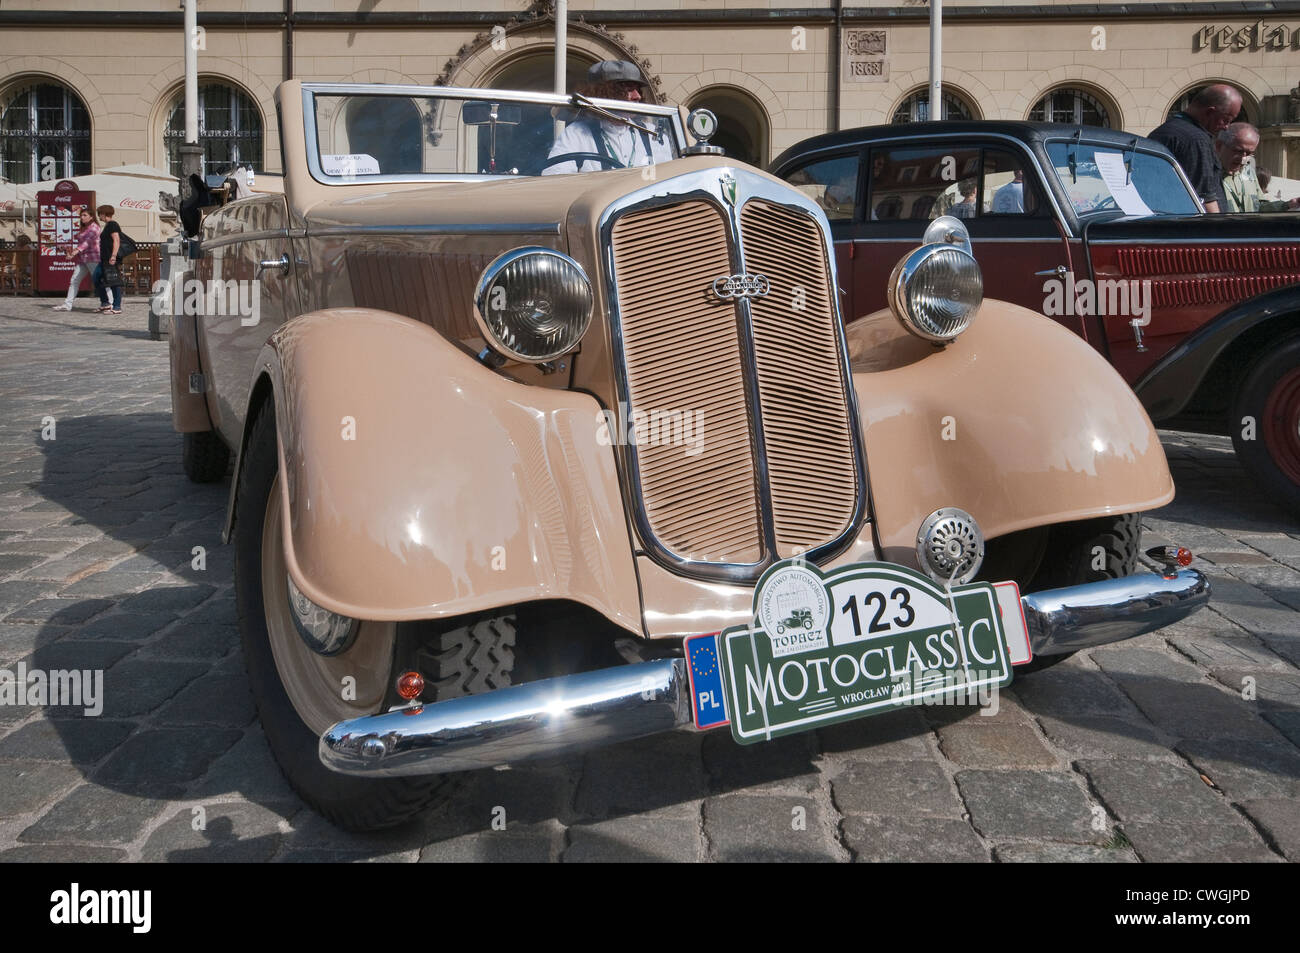 1937 DKW F7 roadster at Motoclassic car show at Rynek (Market Square) in Wroclaw, Lower Silesia, Poland - Stock Image